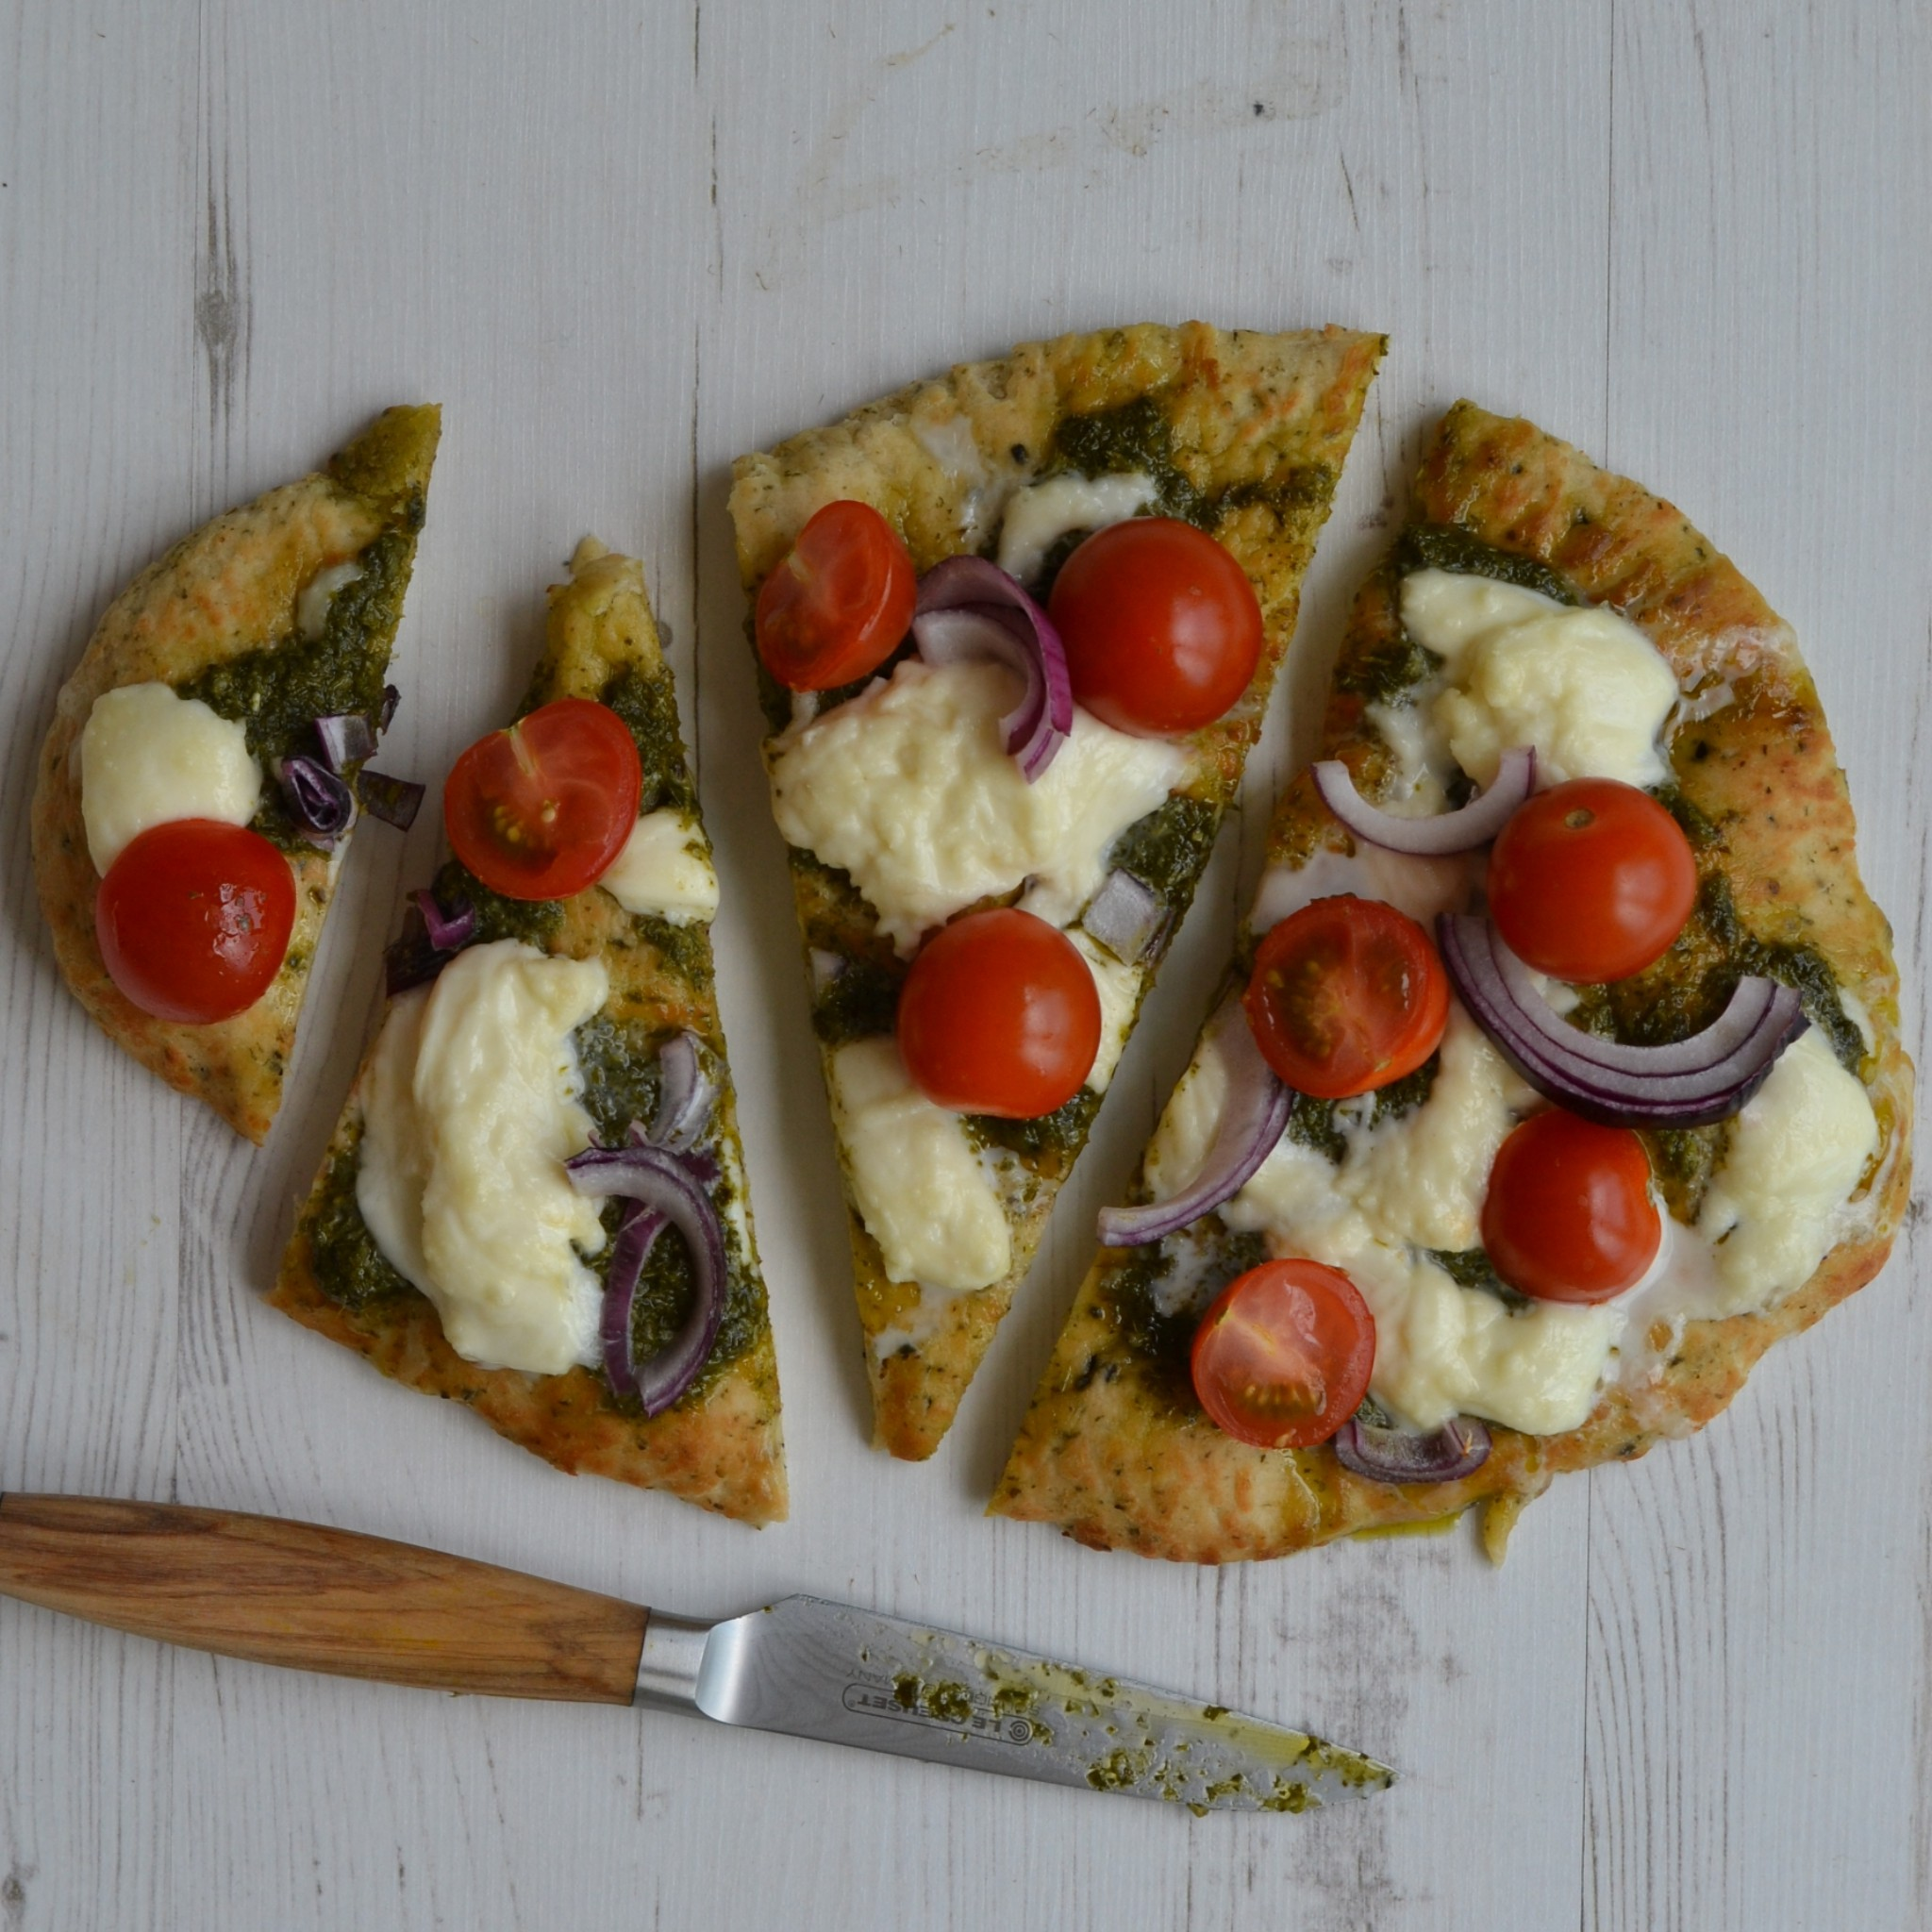 naan pizza mozzarella pesto tomatoes